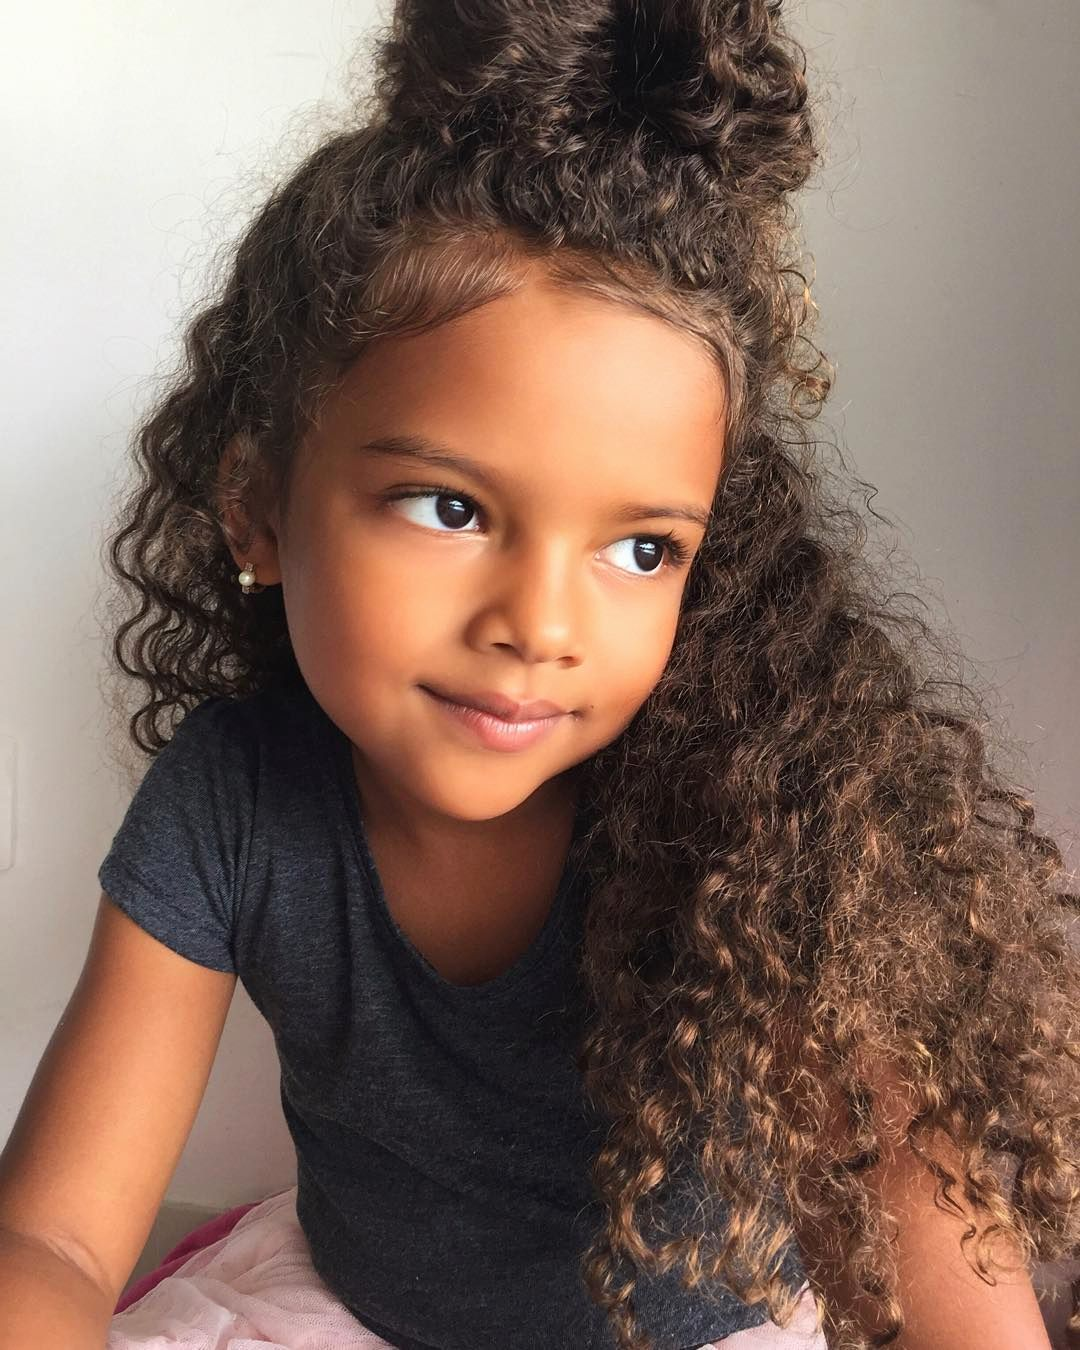 Hairstylestrends Me Nbspthis Website Is For Sale Nbsphairstylestrends Resources And Information Kids Hairstyles Little Girl Hairstyles Mixed Girl Hairstyles